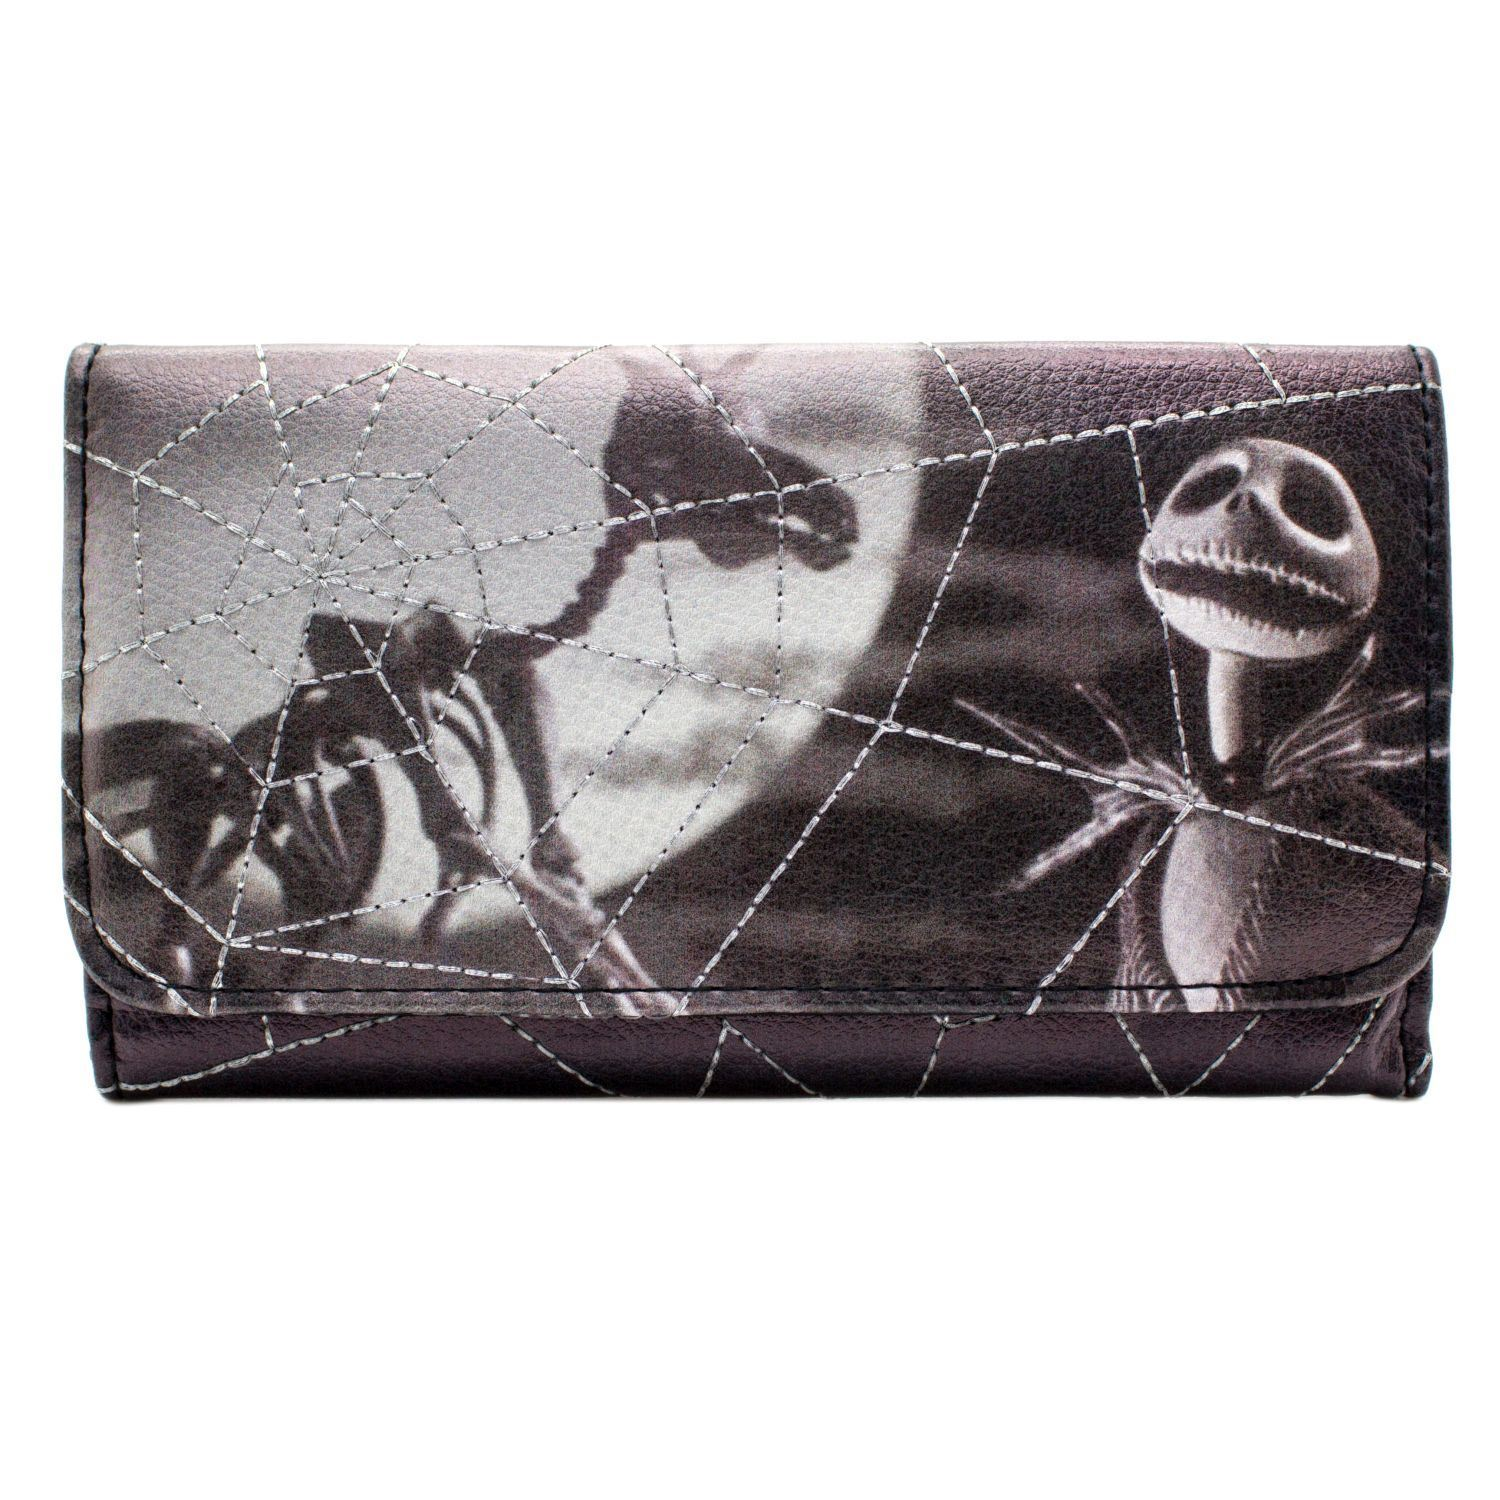 Official Nightmare Before Christmas Skellington Spider Web Purse ...